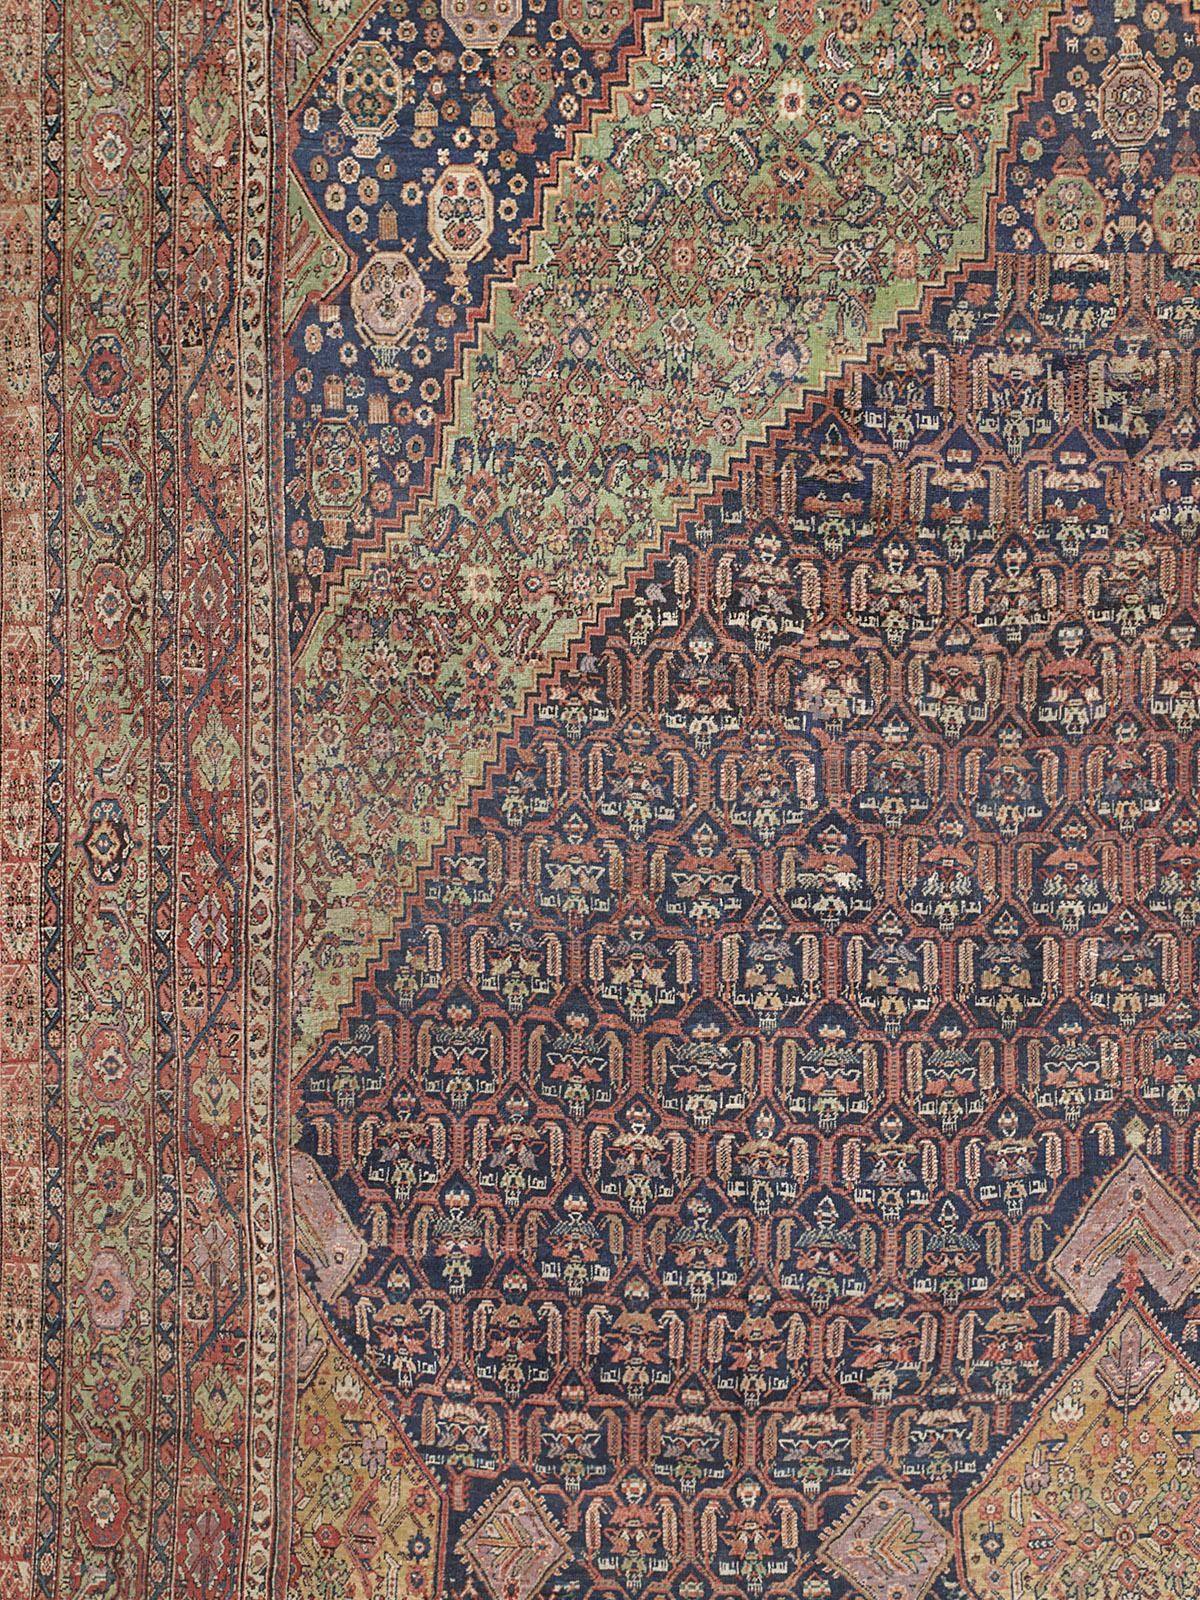 FERAHAN, West Central Persian, 16ft 9in x 26ft 7in, 2nd Quarter, 19th Century. Dazzling expanses of naturally dyed leaf green, burnished gold, and soft violet capture the connoisseur's attention in this tremendously impressive, extremely early Persian Ferahan. Palace size dimensions provide room for the fullest expression of its sought after 150-year-old artistry, as a singular arrangement of nested diamond medallions reveal nuanced variation of line and deep affinity for color.